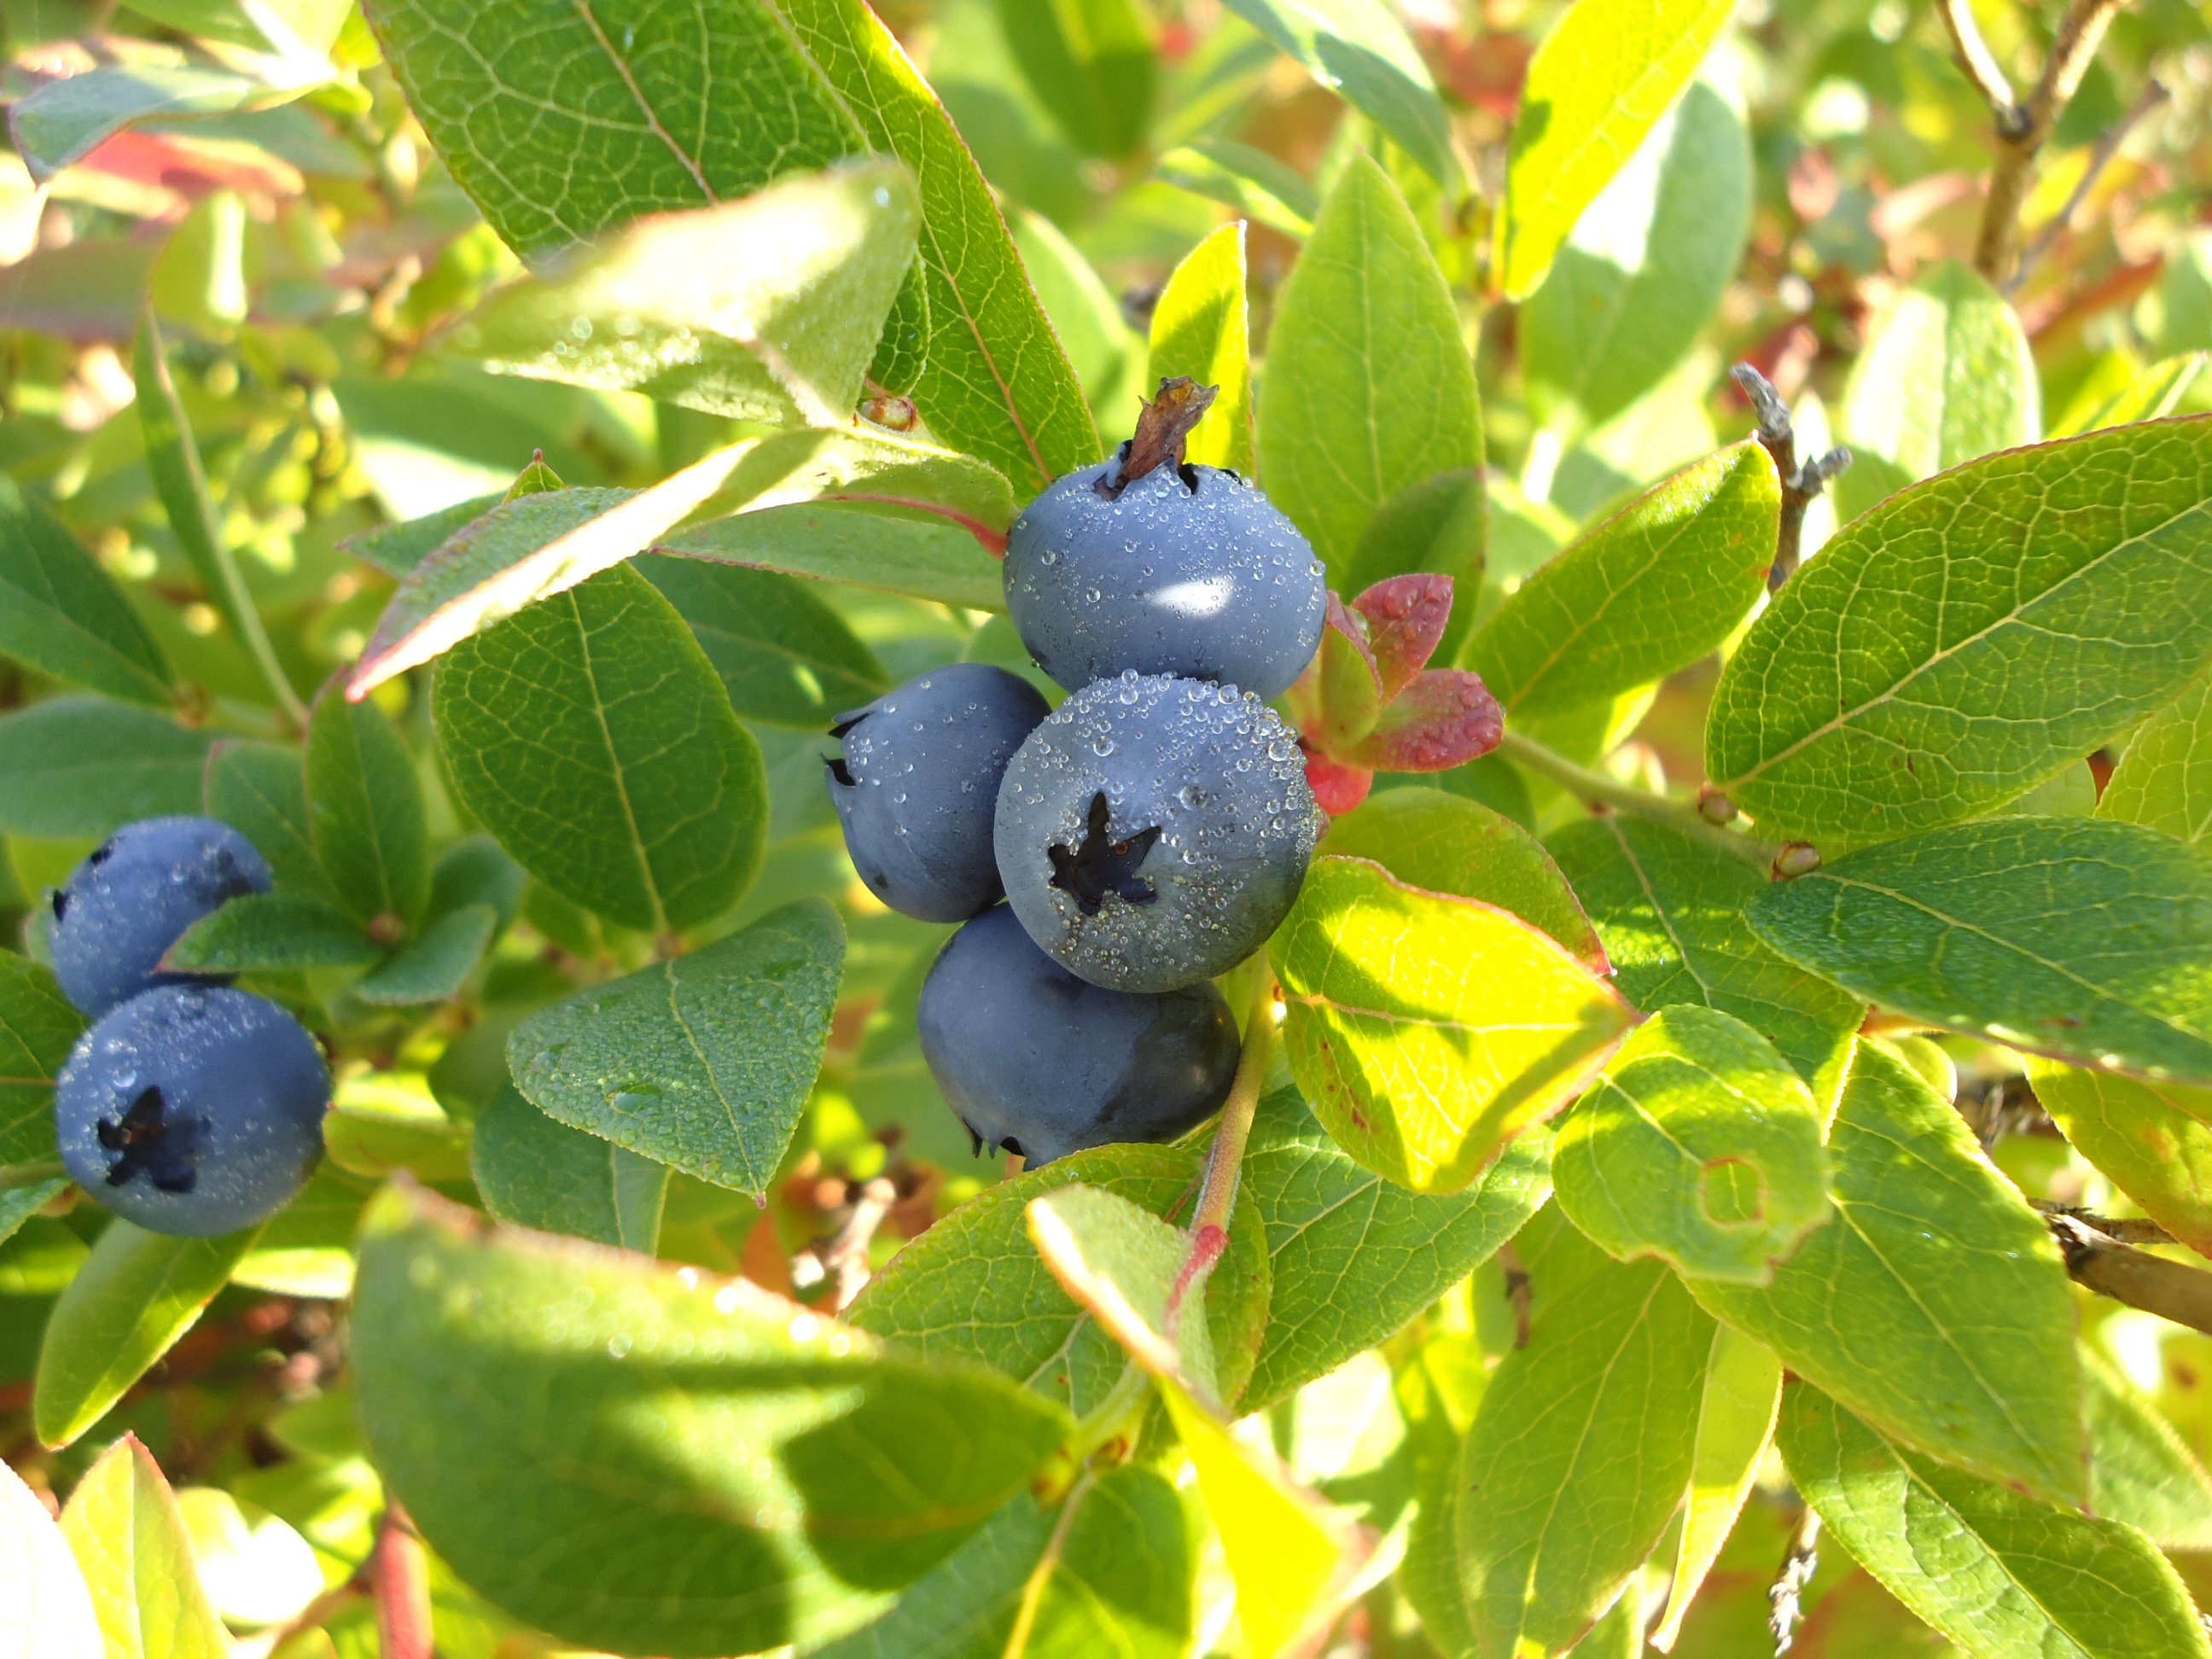 Blueberries in the morning dew